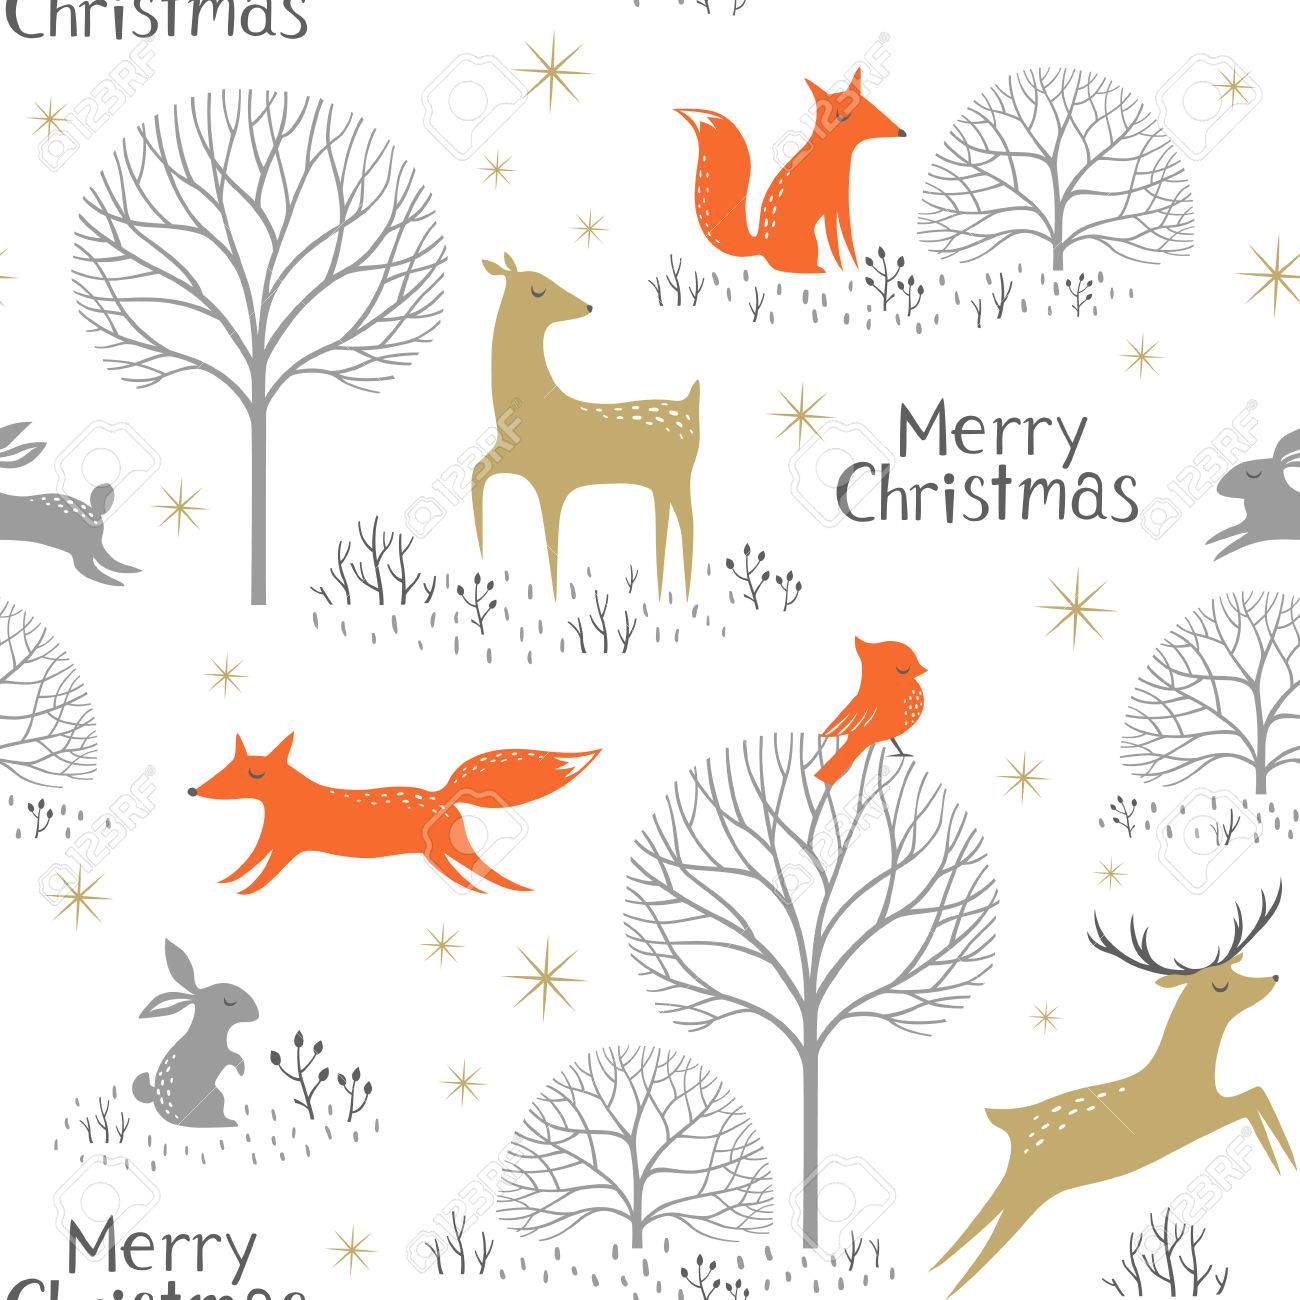 Christmas seamless pattern with woodland animals, trees and gold stars. - 48425794